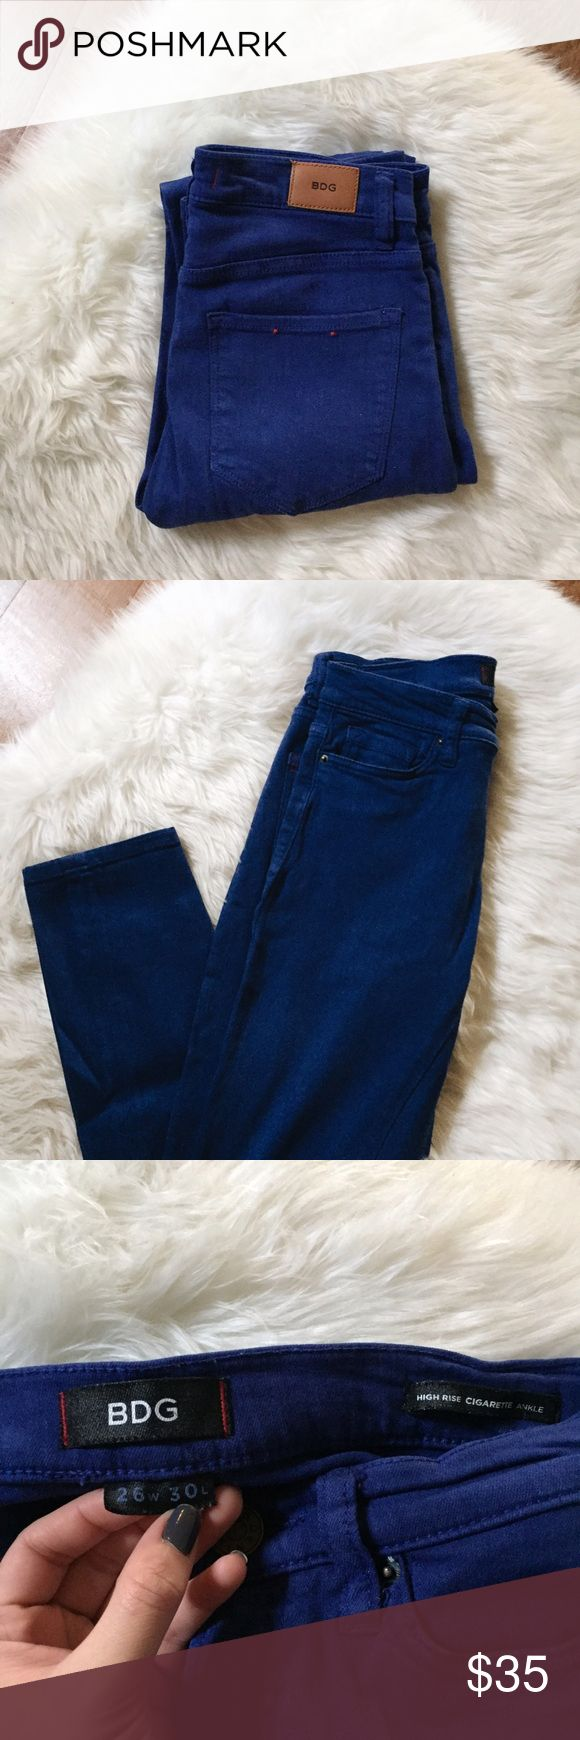 """🆕 listing! BDG high rise cobalt pants Urban Outfitters BDG high rise cigarette ankle pants in the color cobalt. Purchased from another app so they may have been worn by the previous seller but i received and never wore them. Only washed. Size 26"""" w and 30"""" l. No trades or try ons. Feel free to make an offer. Lowballs will be ignored. Urban Outfitters Jeans Ankle & Cropped"""